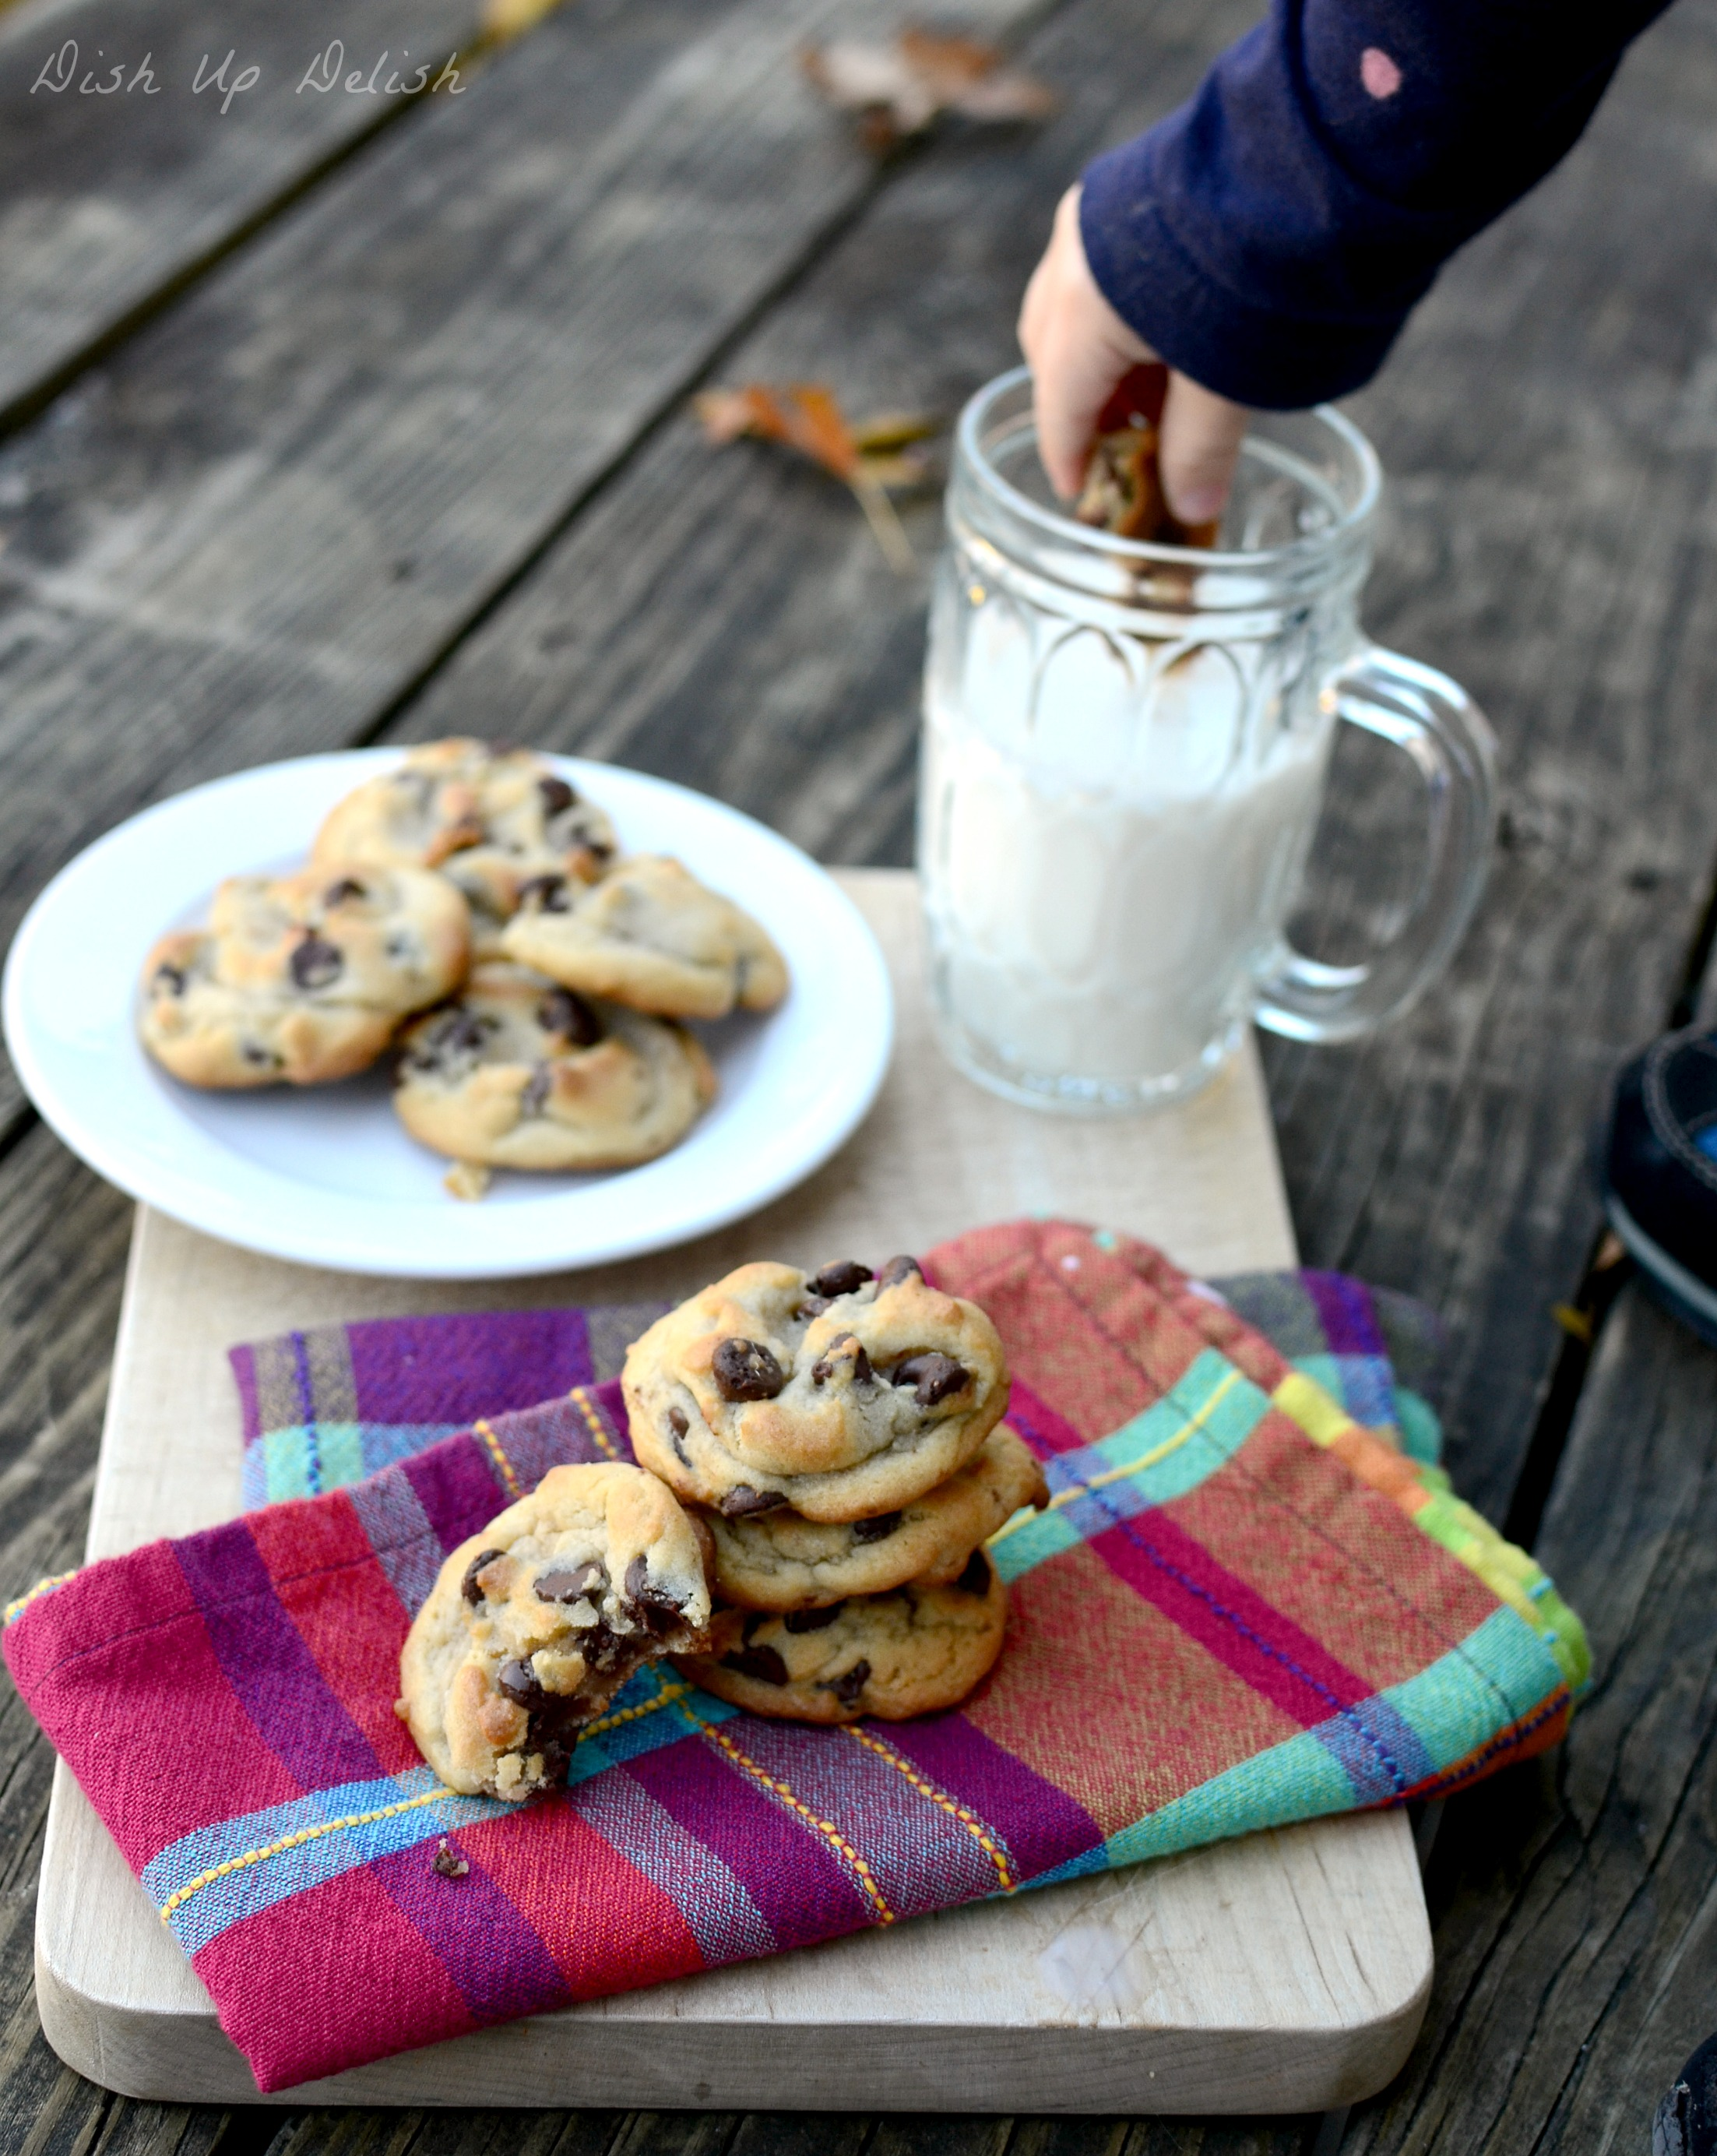 Chocolate Chip Cookies Dish Up Delish